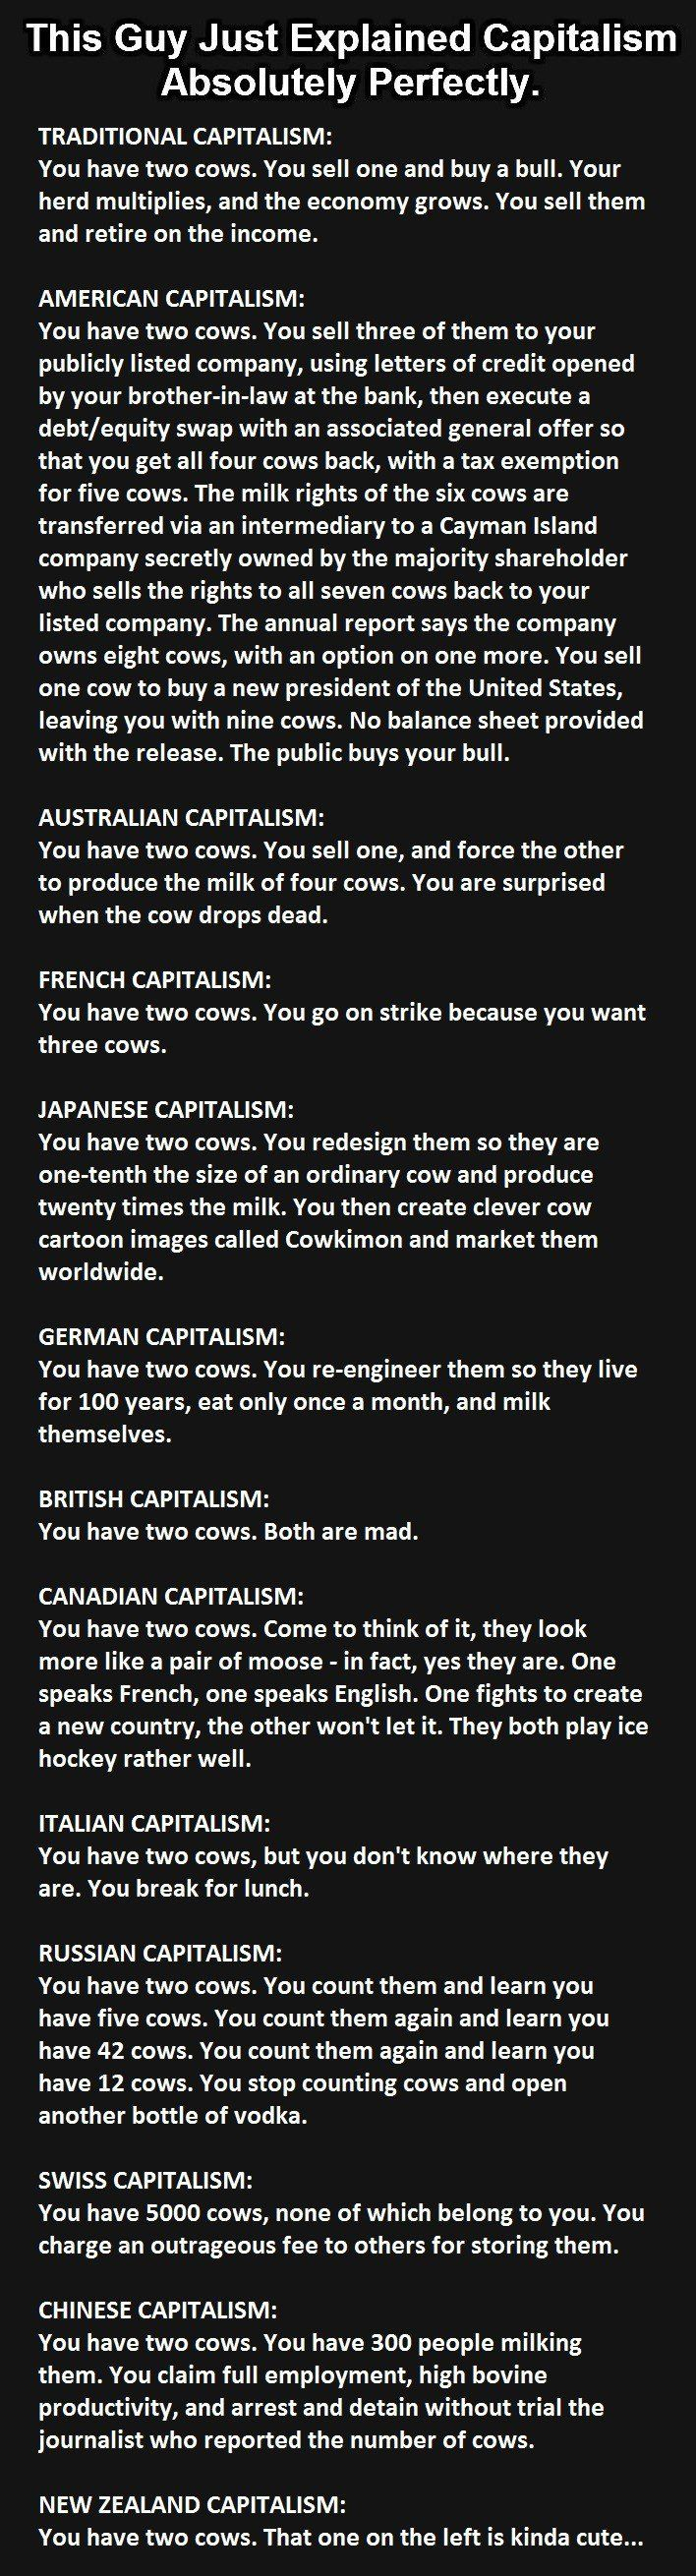 Brilliant: Versions of capitalism in each country perfectly explained by using cows | Young Conservatives